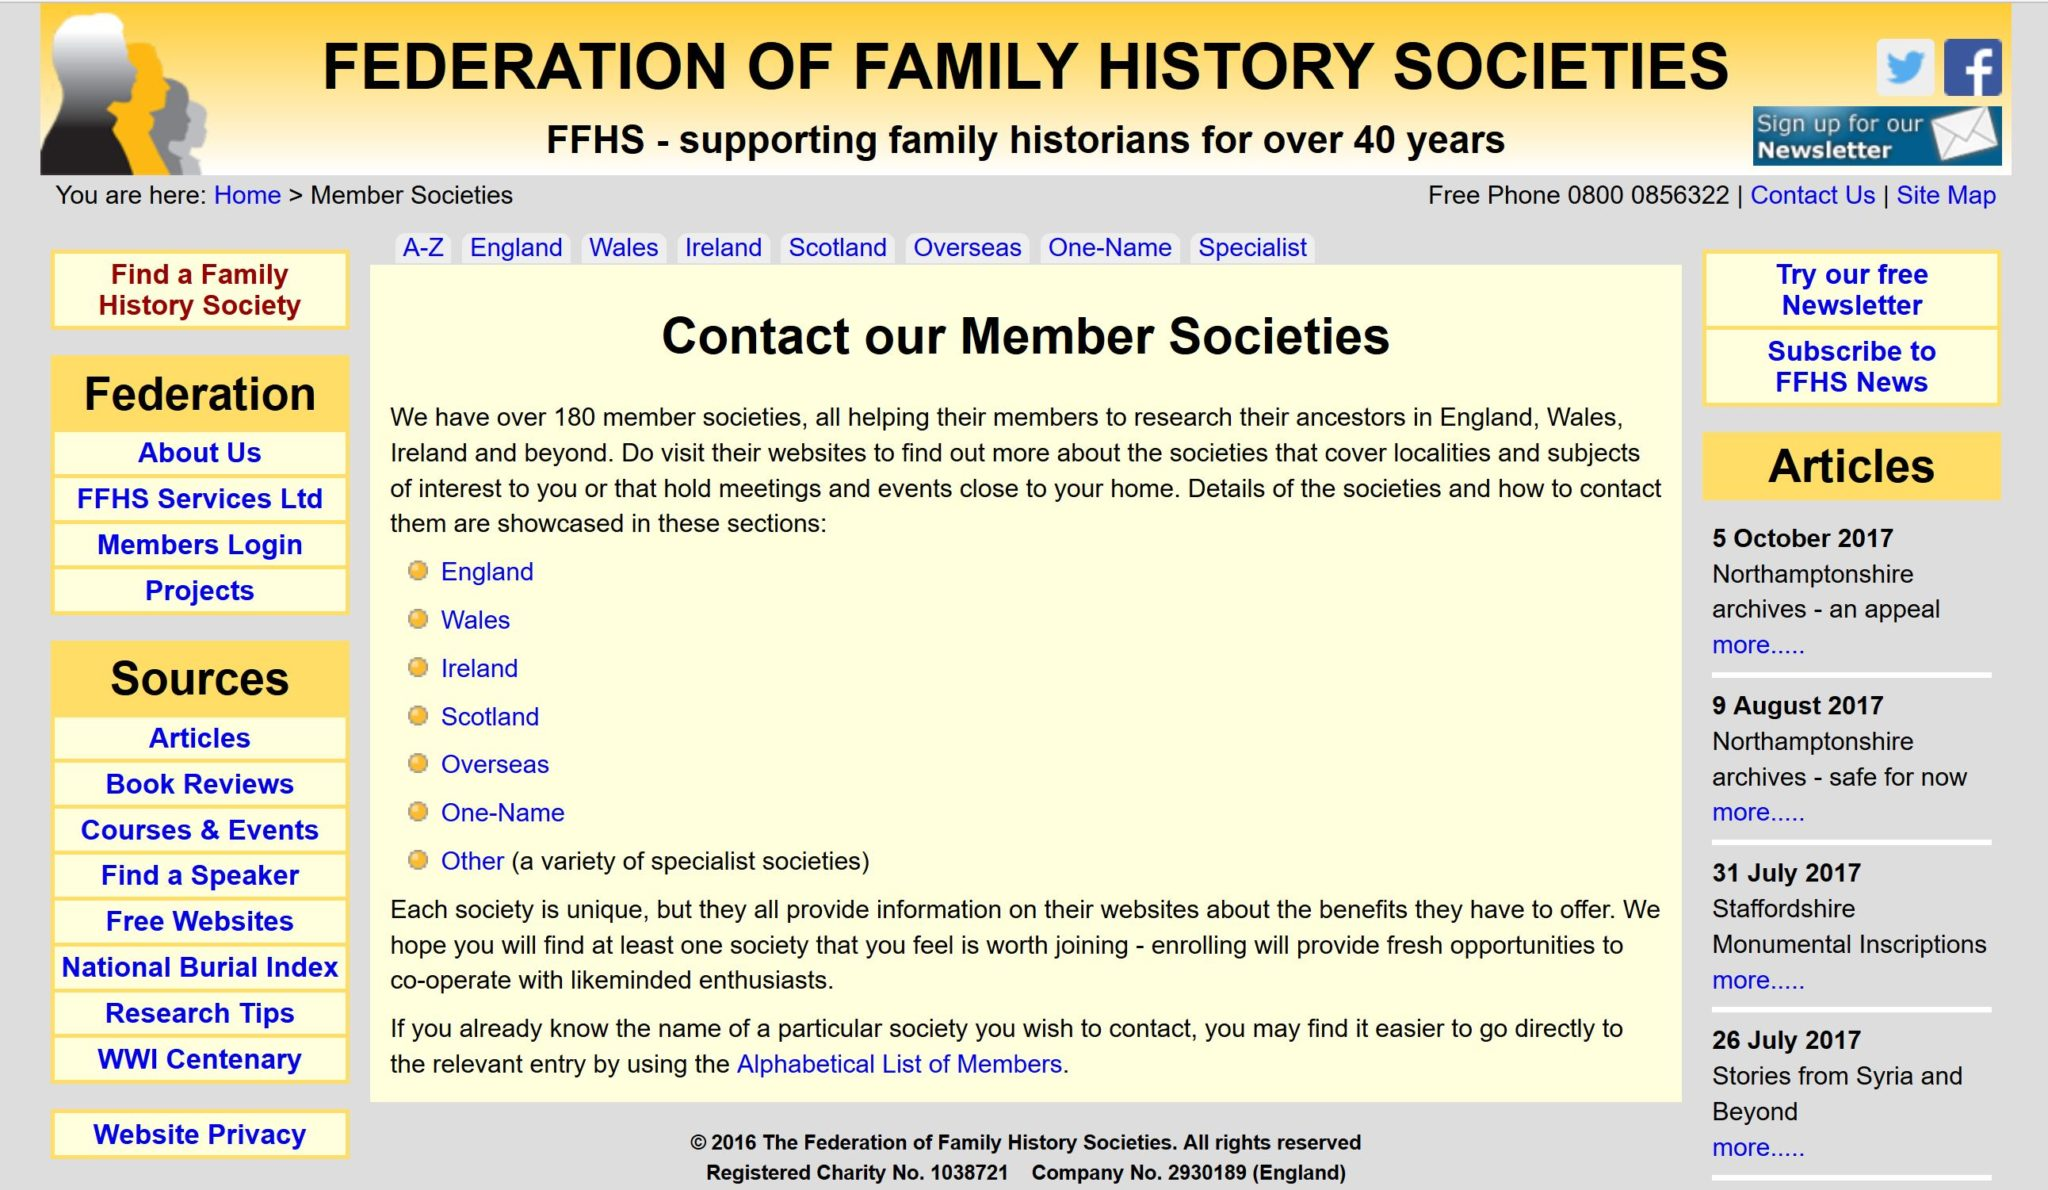 British, Irish, Scottish, Welsh Genealogy Research Guide, Federation of Family History Societies